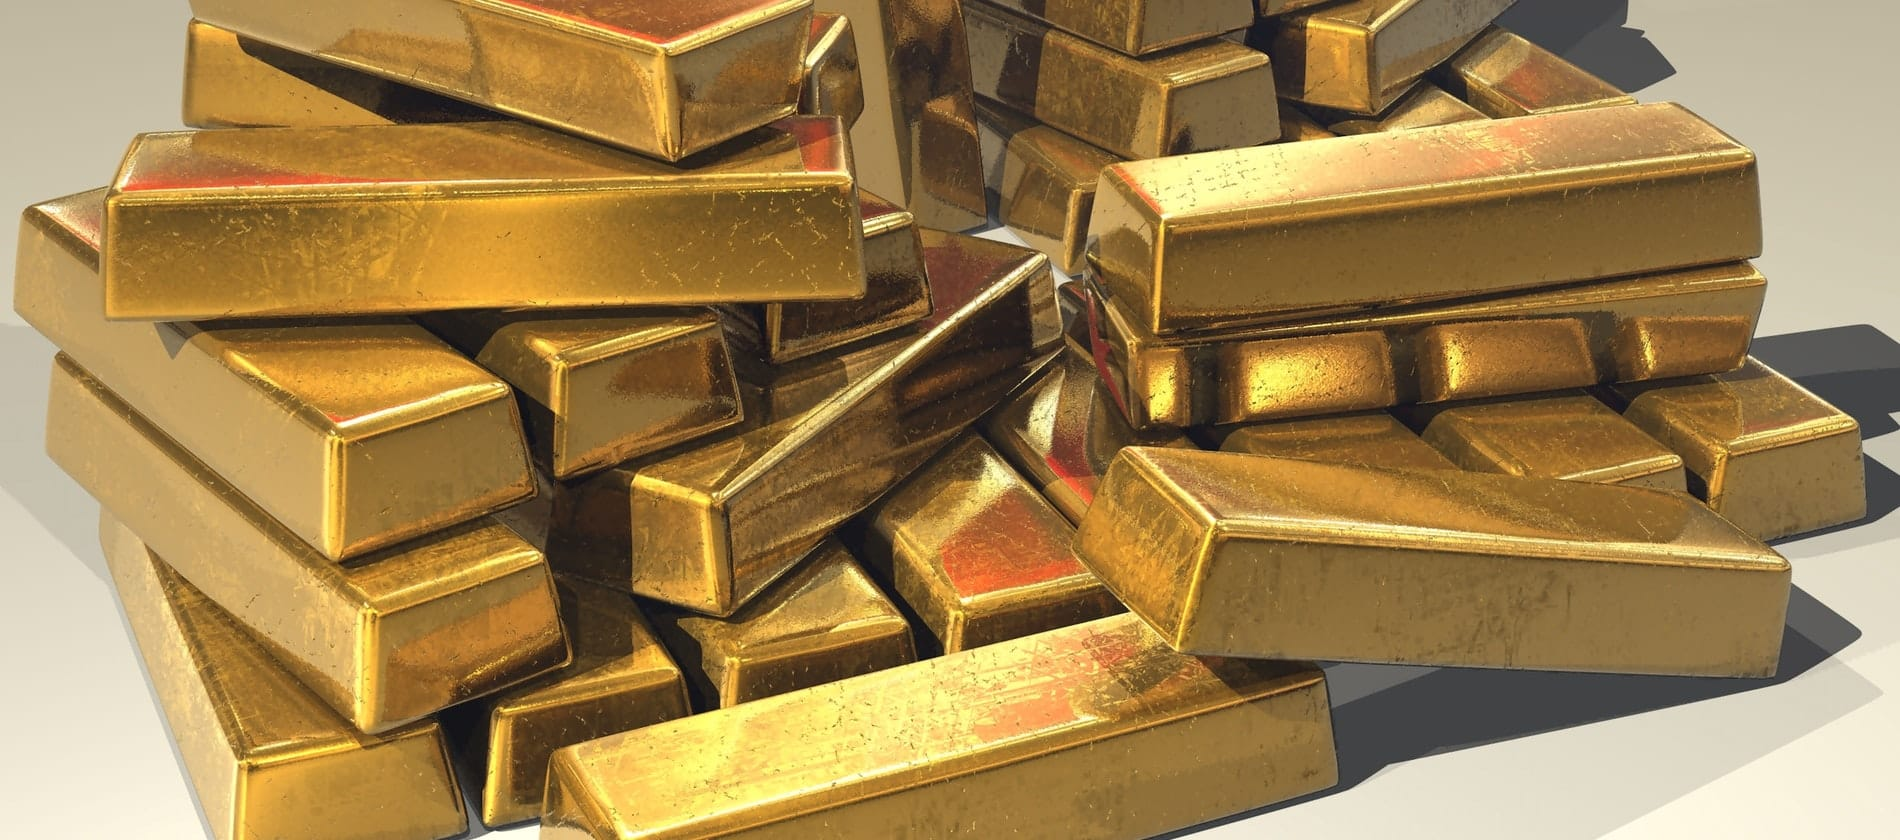 Top Canadian Gold Stocks For 2021